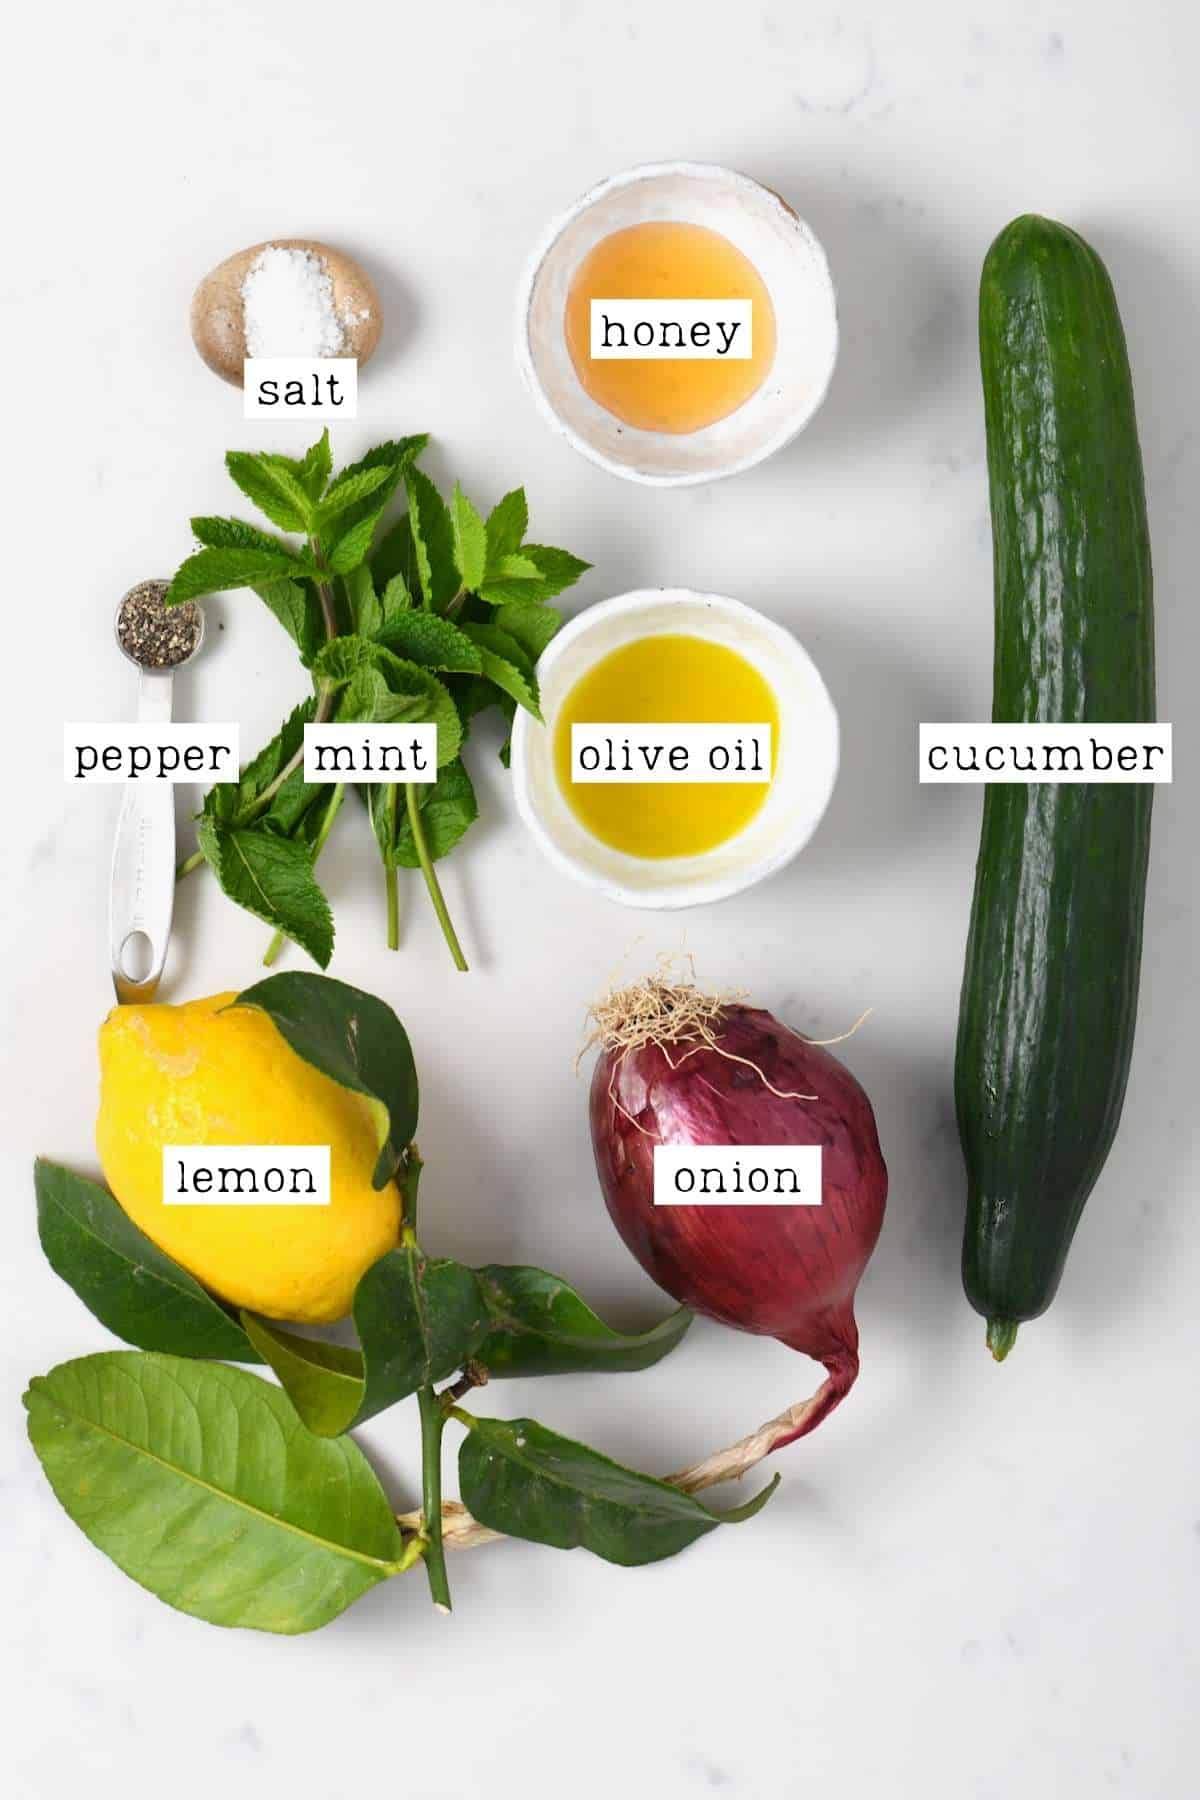 Ingredients for cucumber onion salad